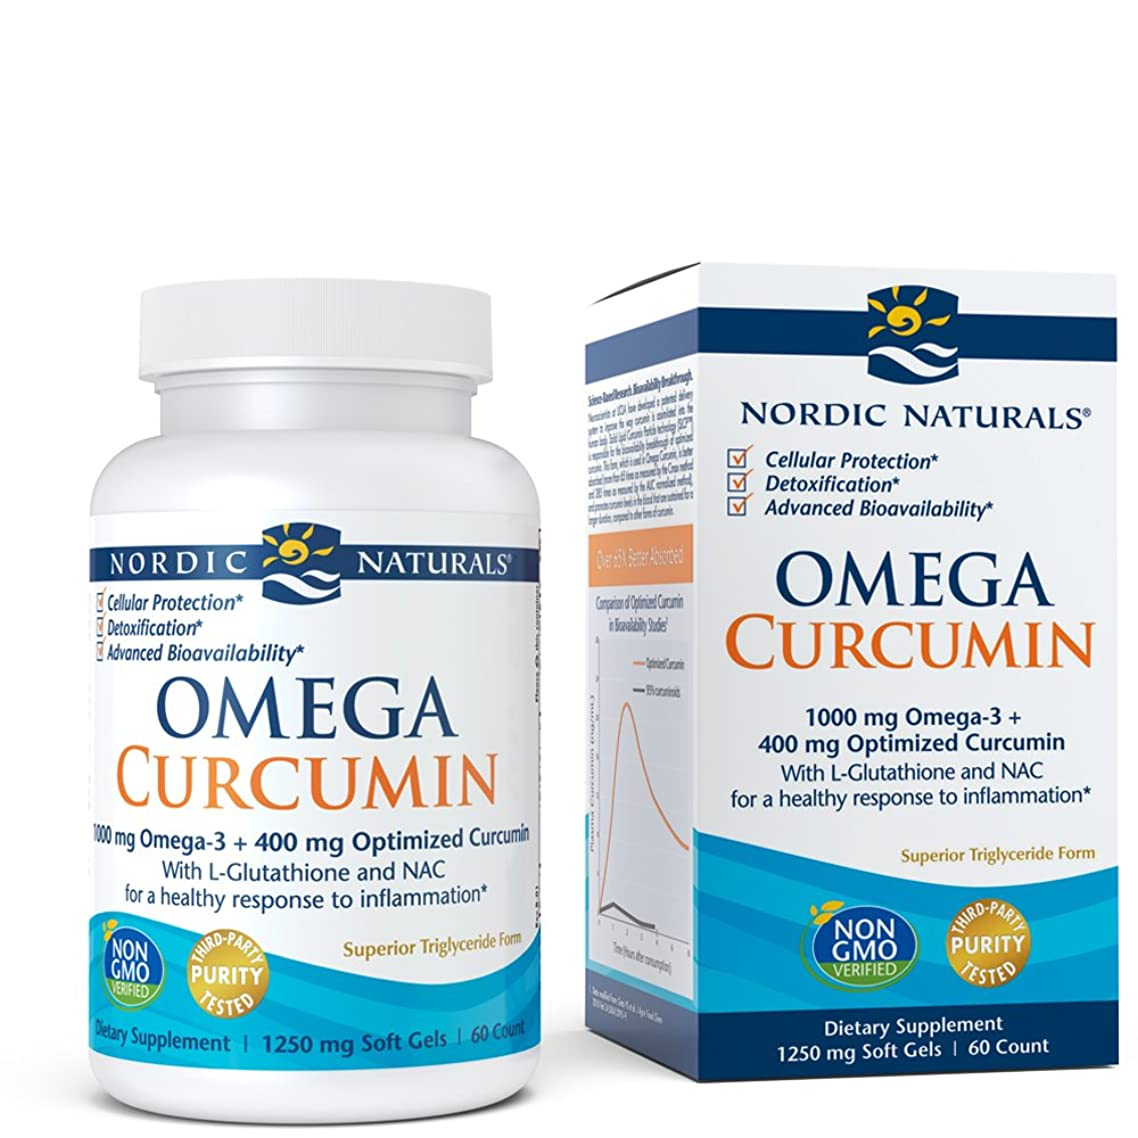 Nordic Naturals Omega Curcumin - Cellular Level Protection, Antioxidant and Anti-Inflammatory, 60 Soft Gels